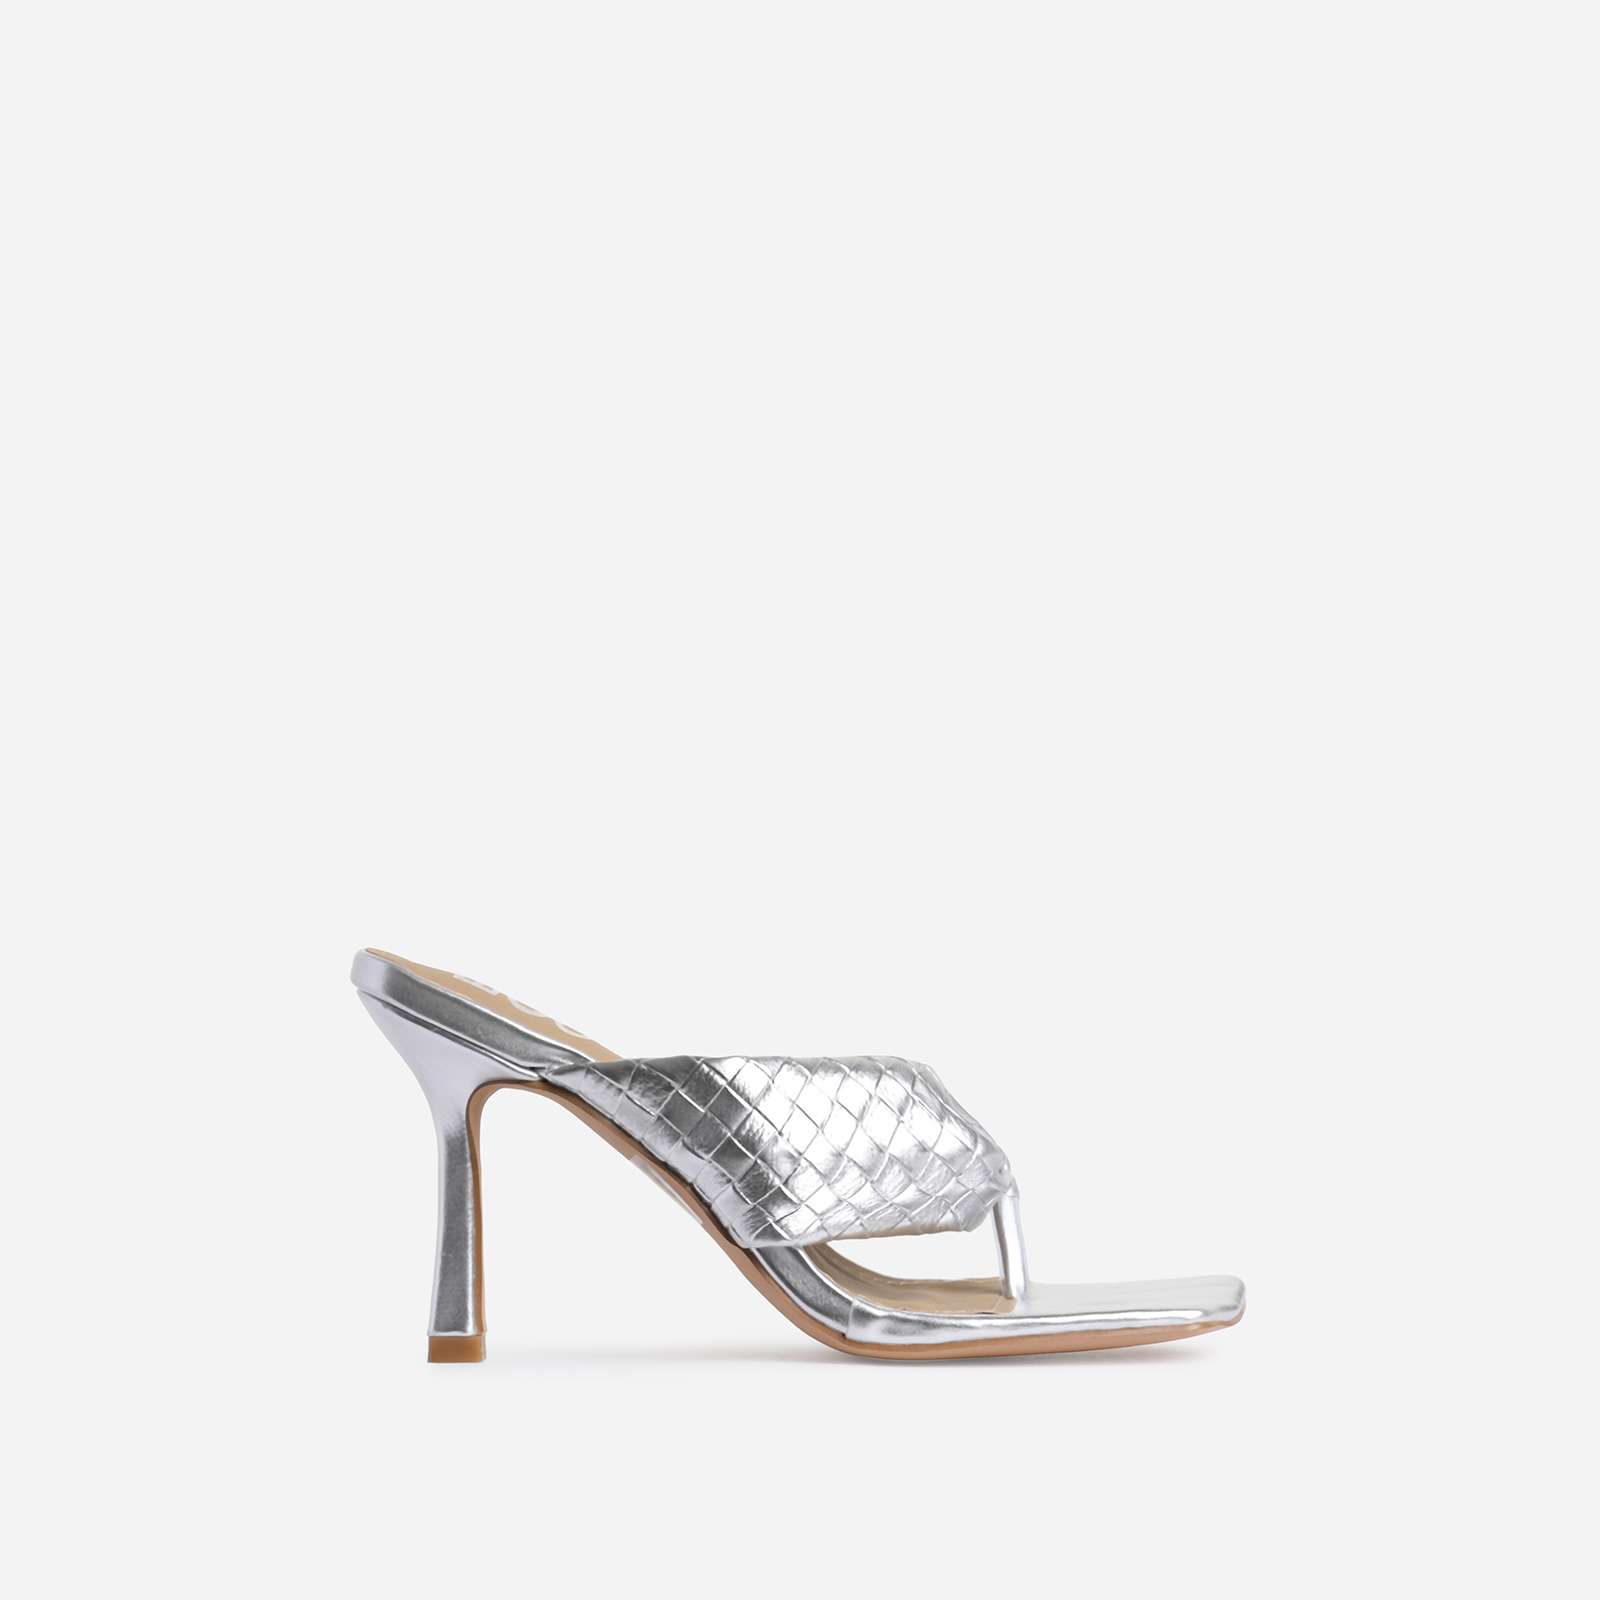 Brave Braided Detail Square Kitten Toe Heel Mule In Metallic Silver Faux Leather